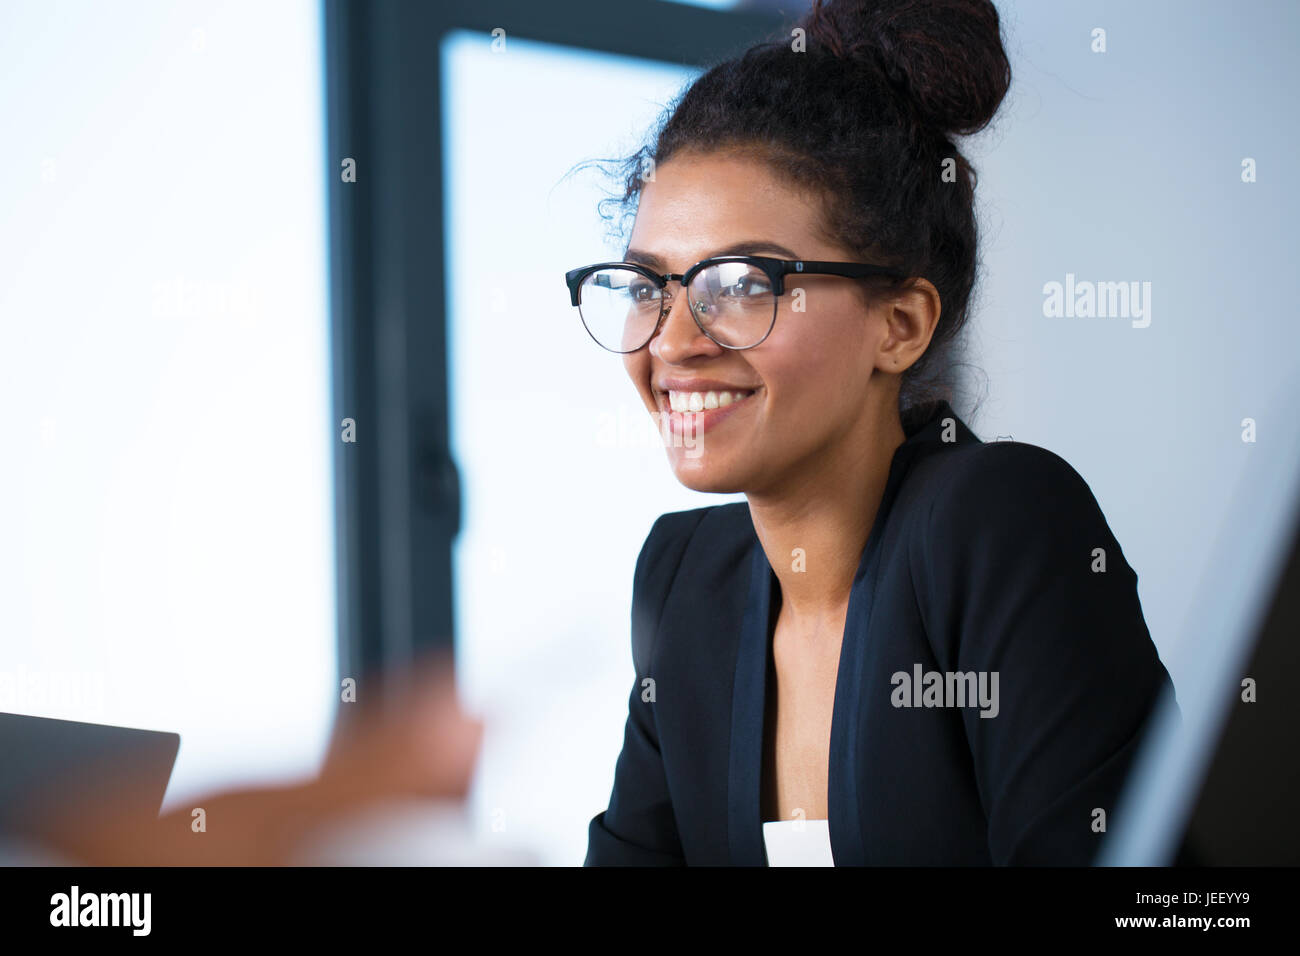 Team of business person works together - Stock Image